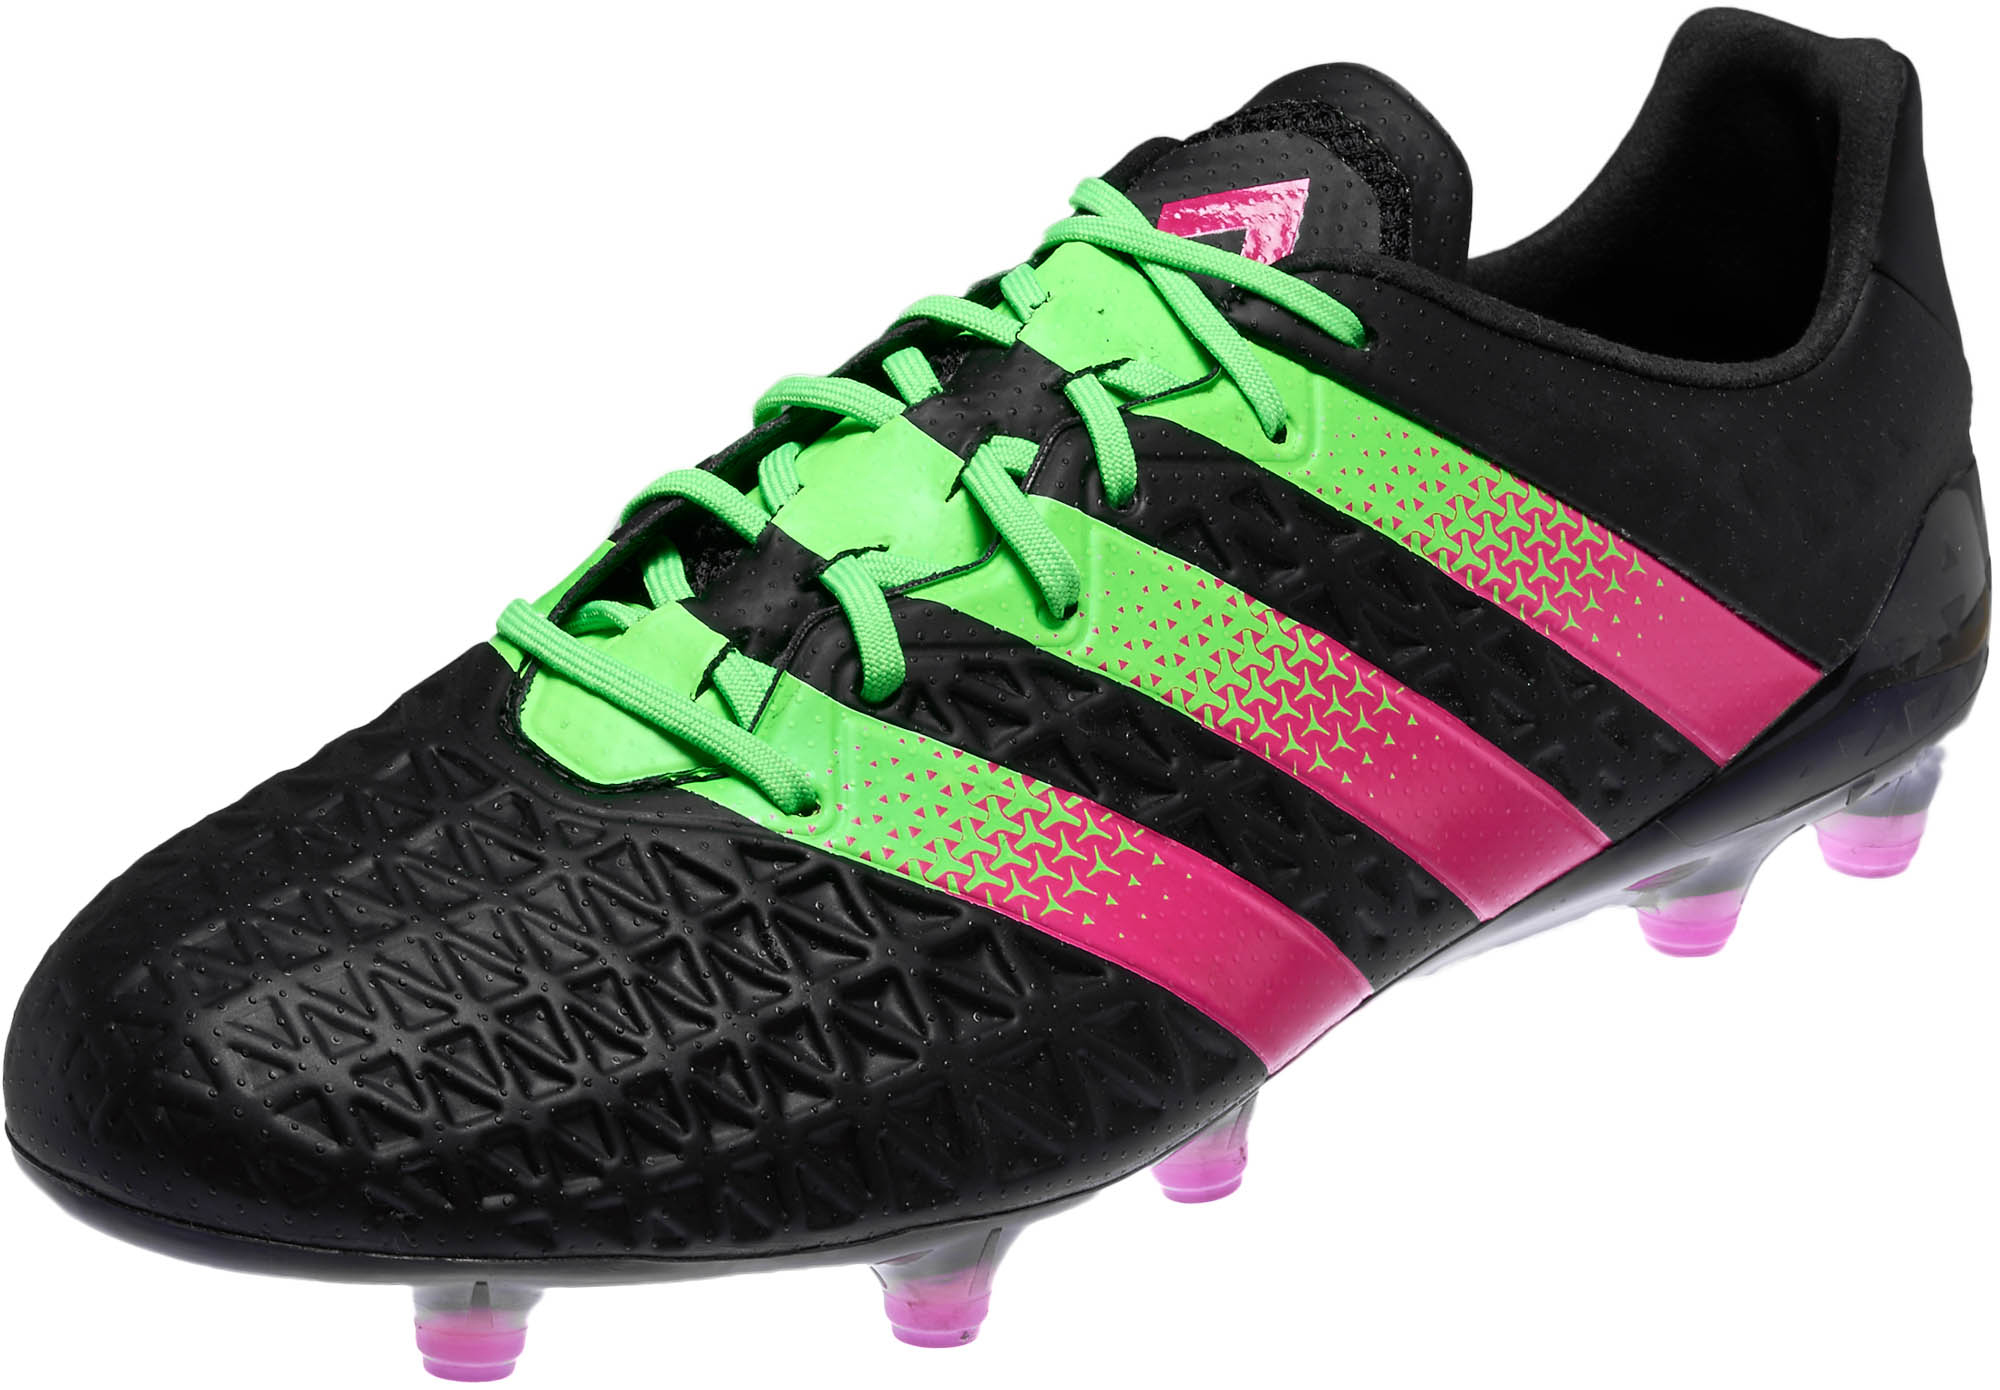 check out 7bb94 f2928 adidas ACE 16.1 FG – Black Solar Green